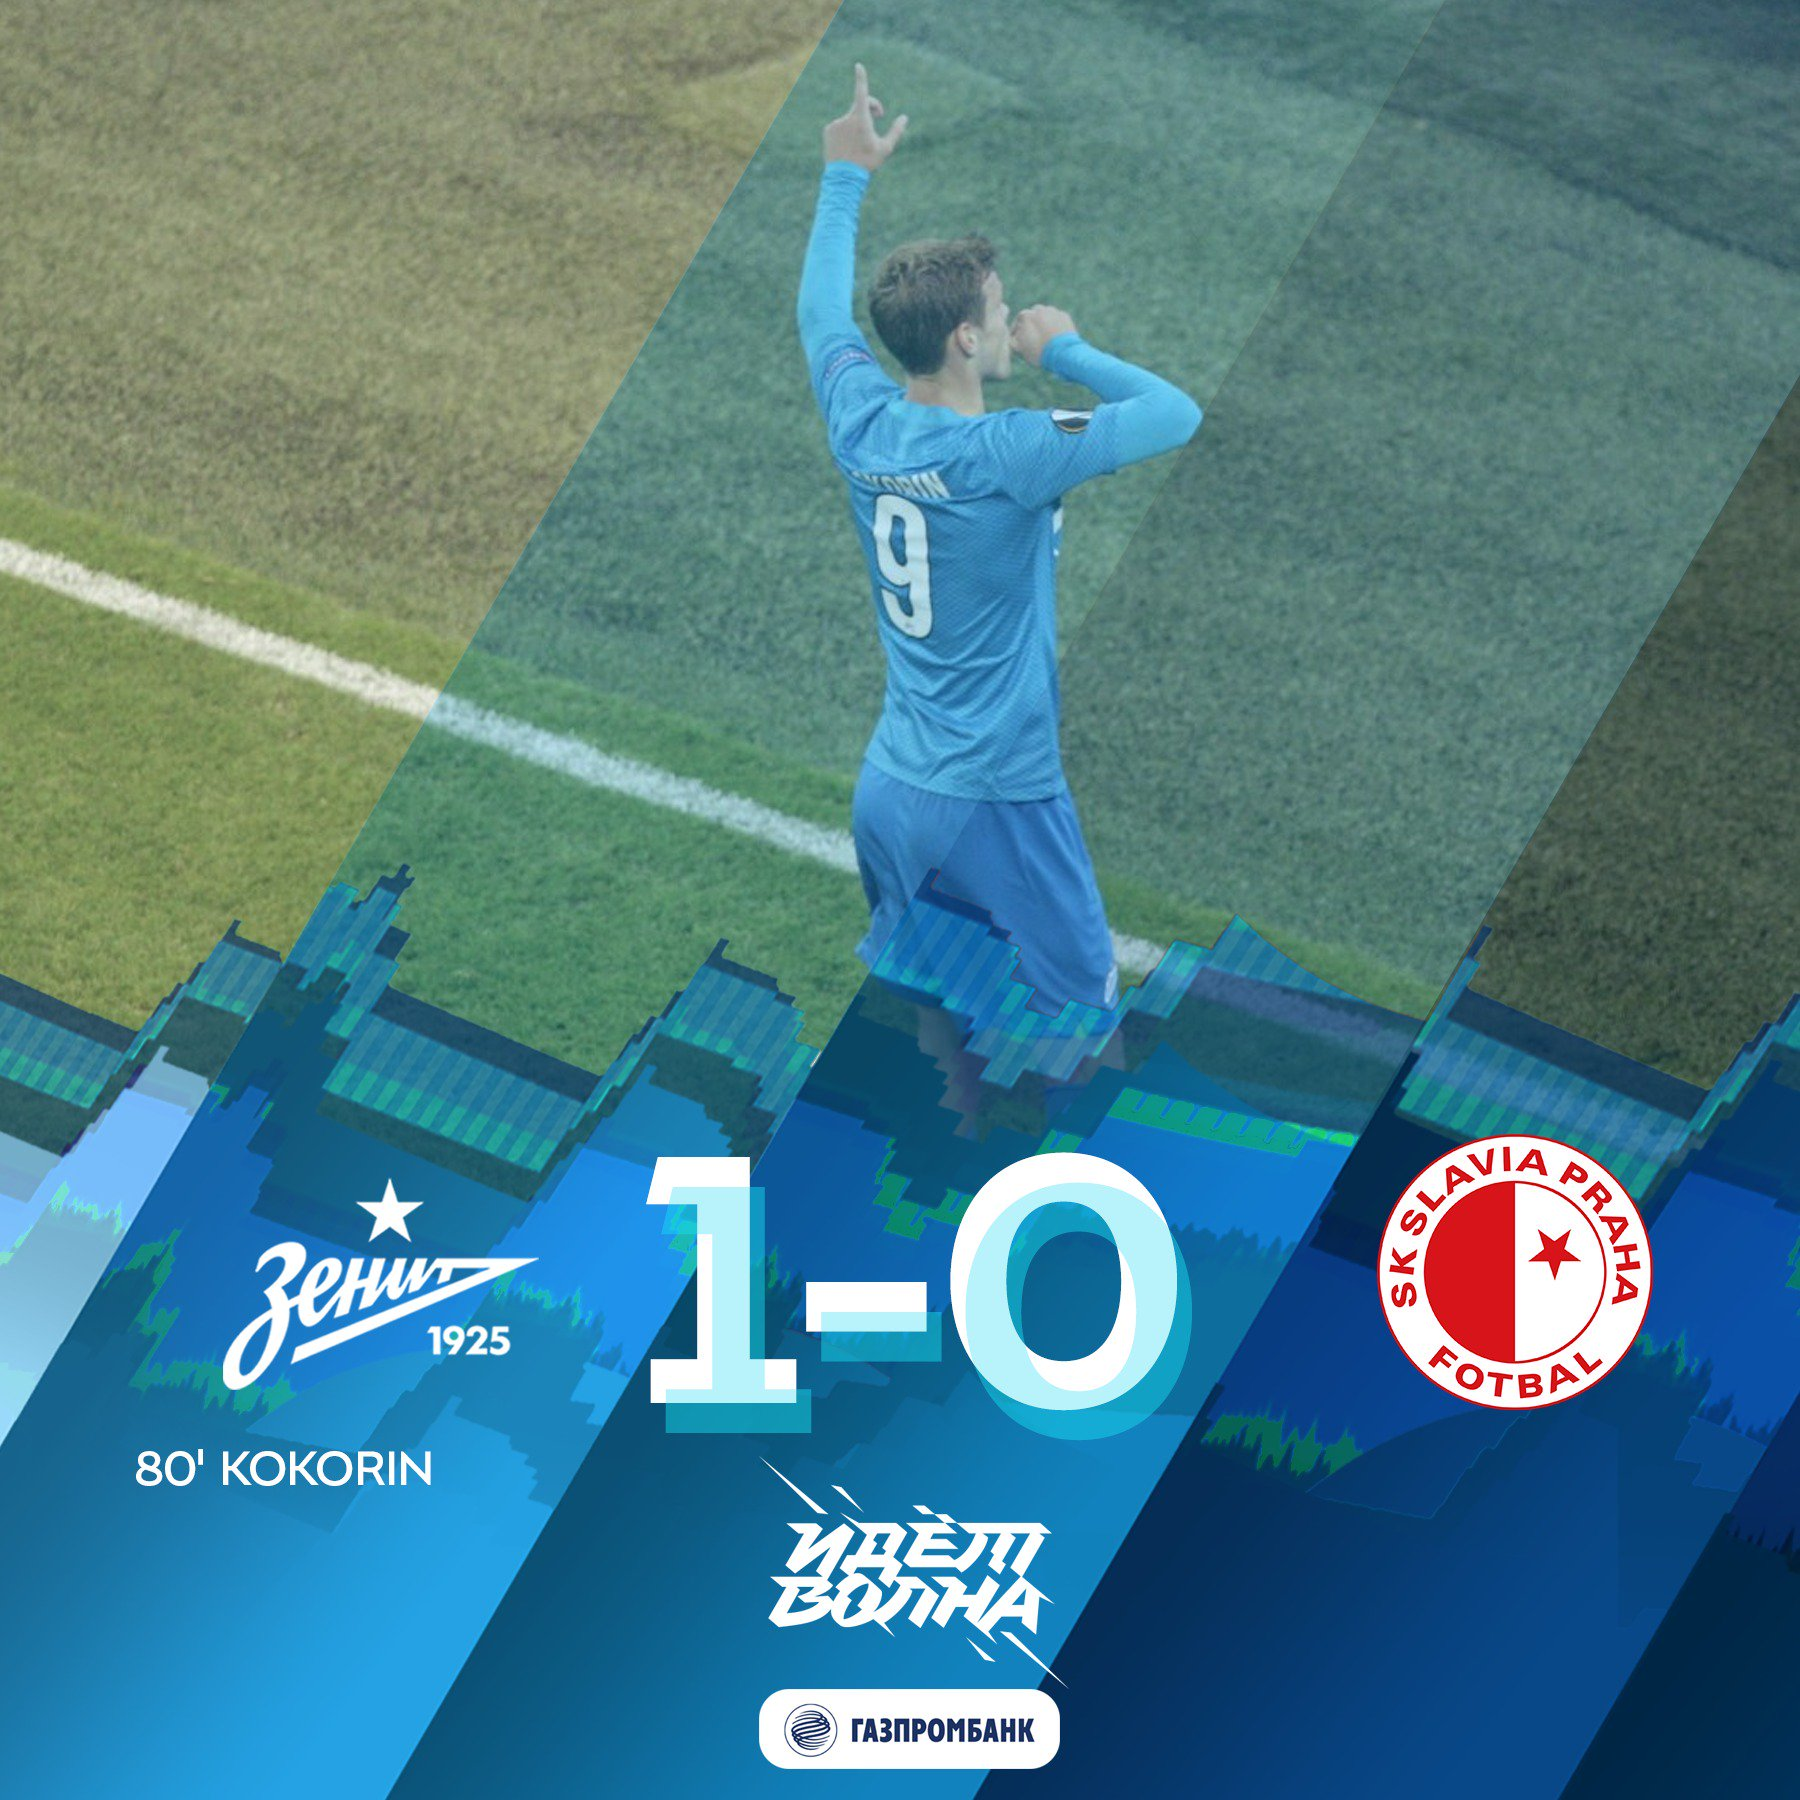 Zenit 1-0 Slavia Prague: Match Report